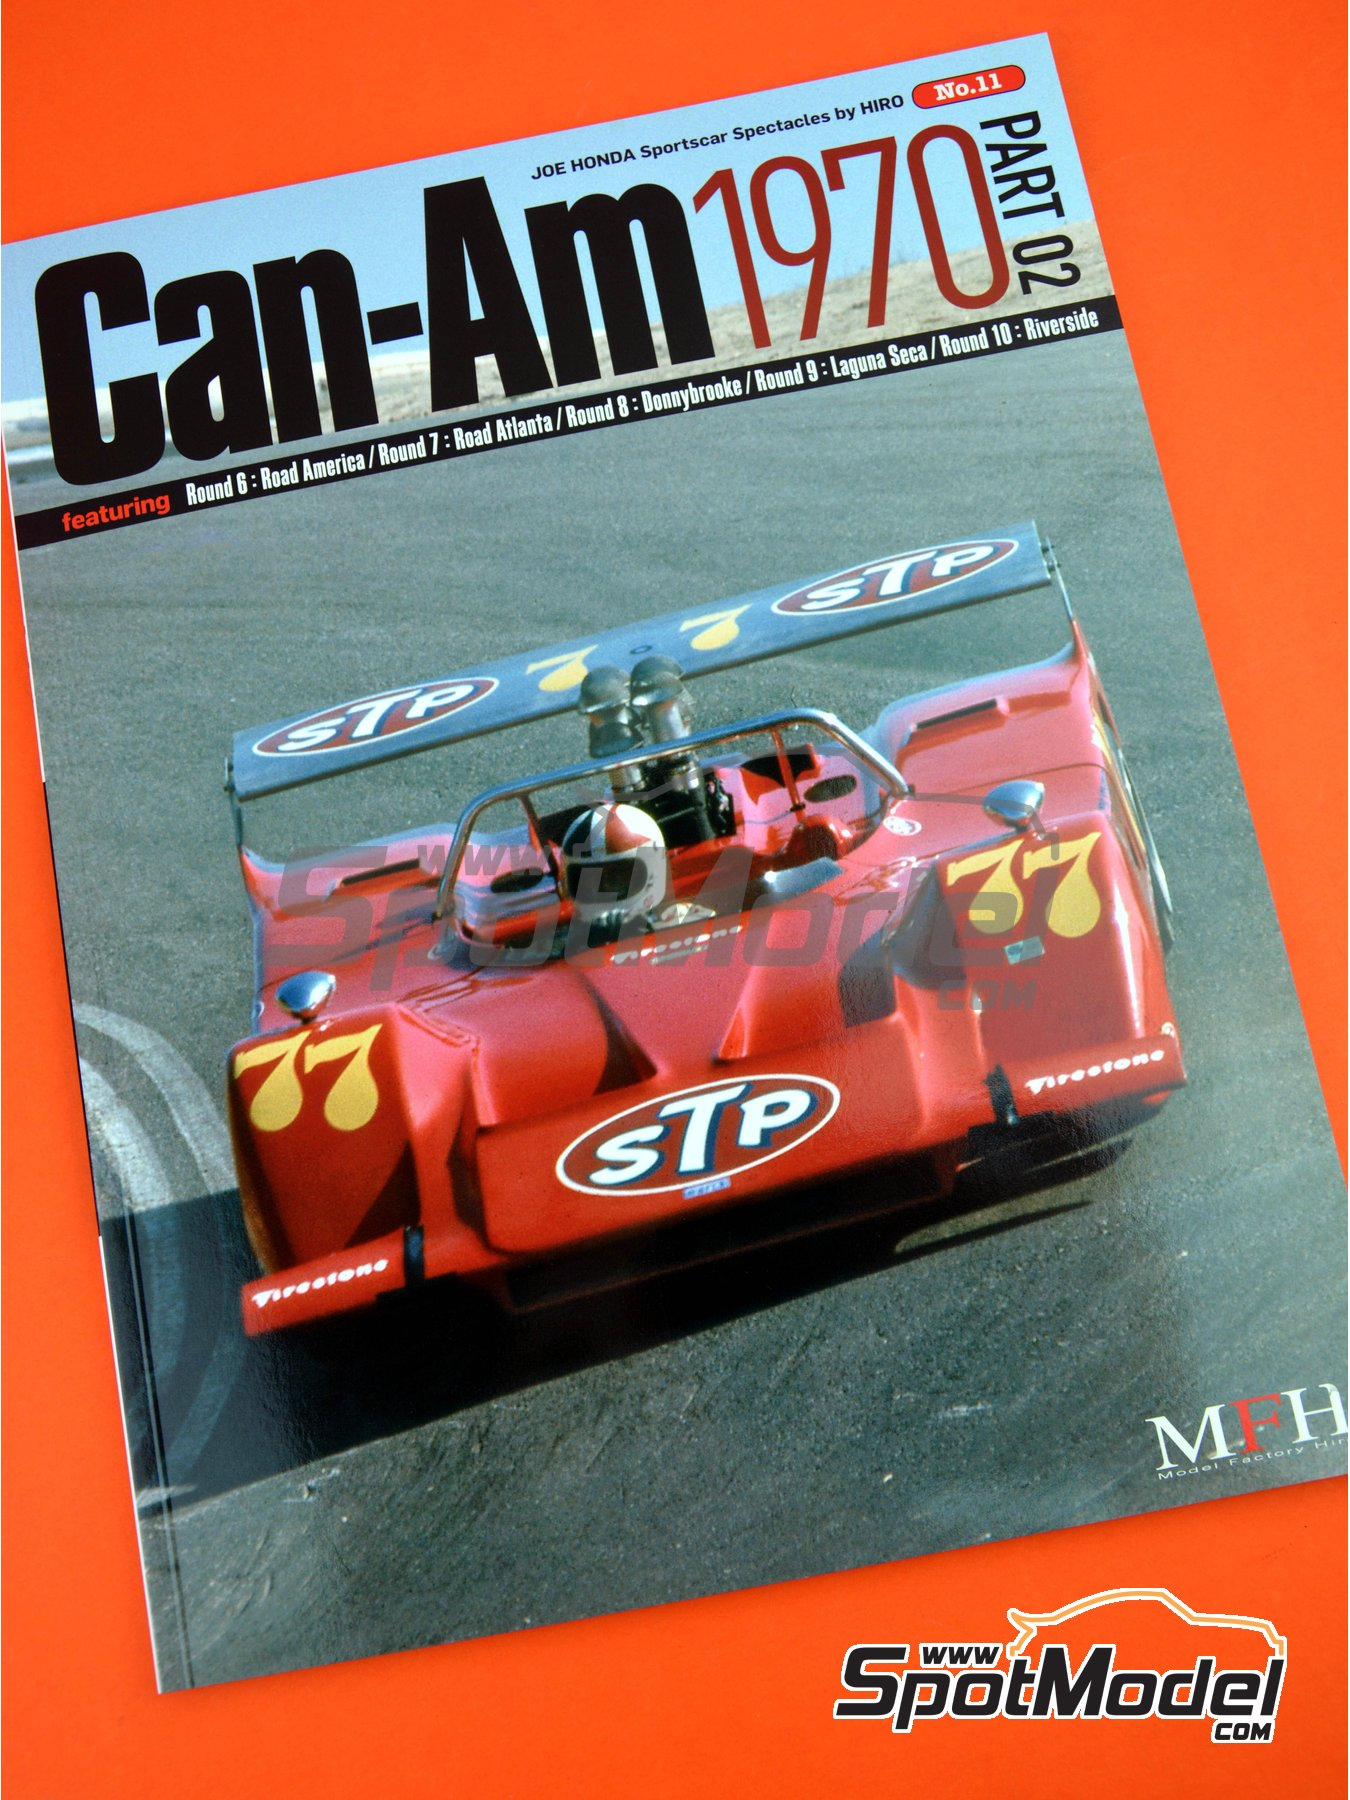 JOE HONDA Sportcar Spectacles by Hiro: Parte 2 - Can-Am 1970 | Libro de referencia fabricado por Model Factory Hiro (ref. MFH-SS011) image